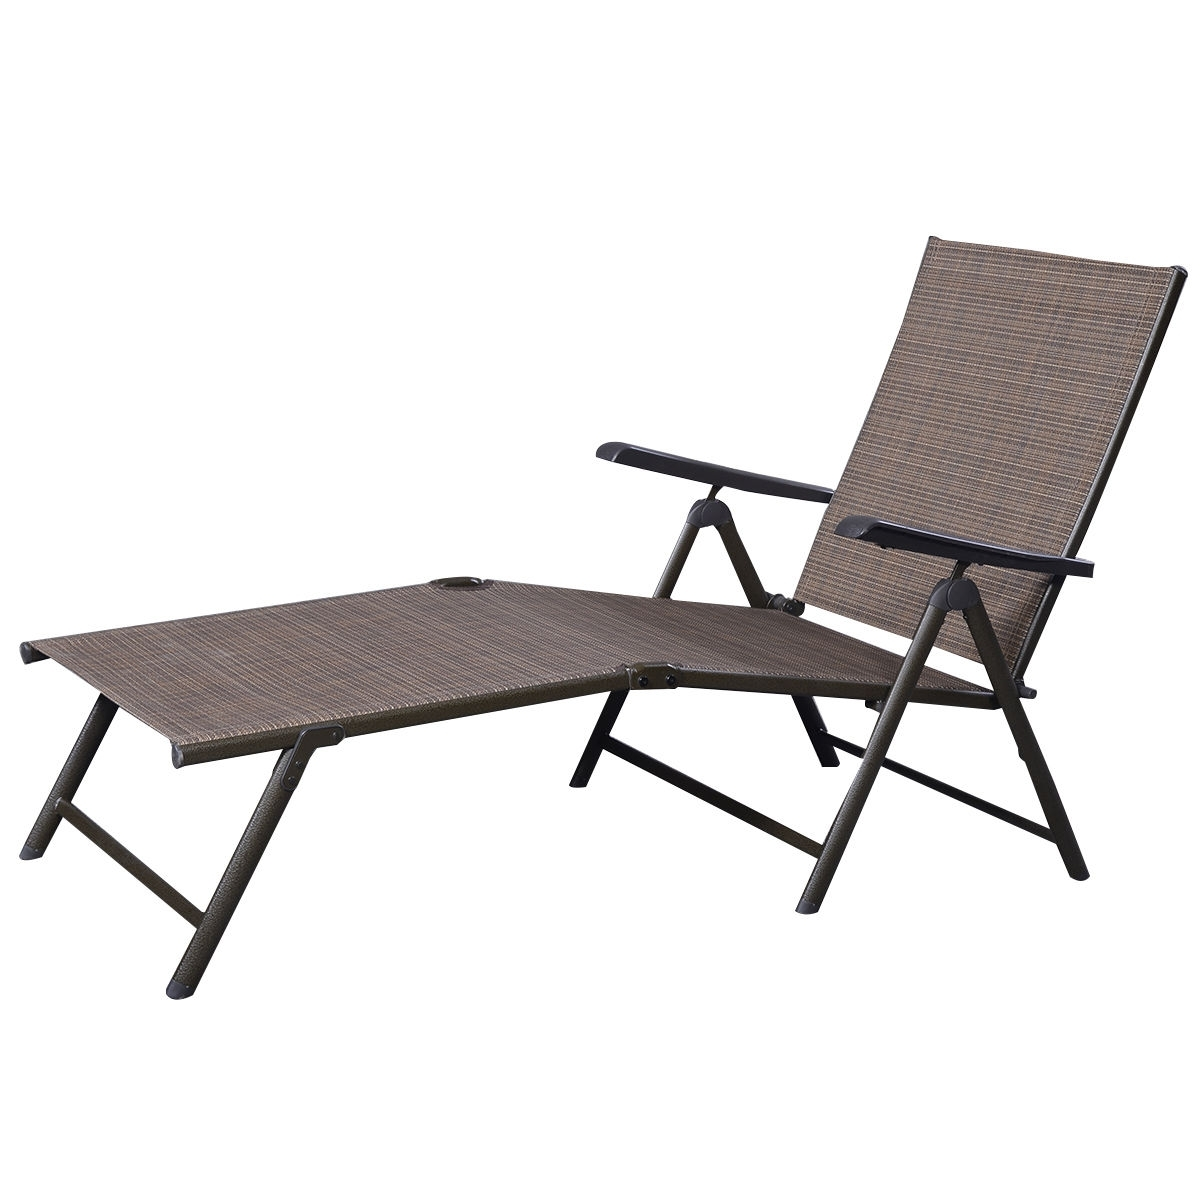 Fashionable Pool Chaise Lounge Chairss With Regard To Outdoor Adjustable Chaise Lounge Chair – Sunloungers – Outdoor (View 6 of 15)